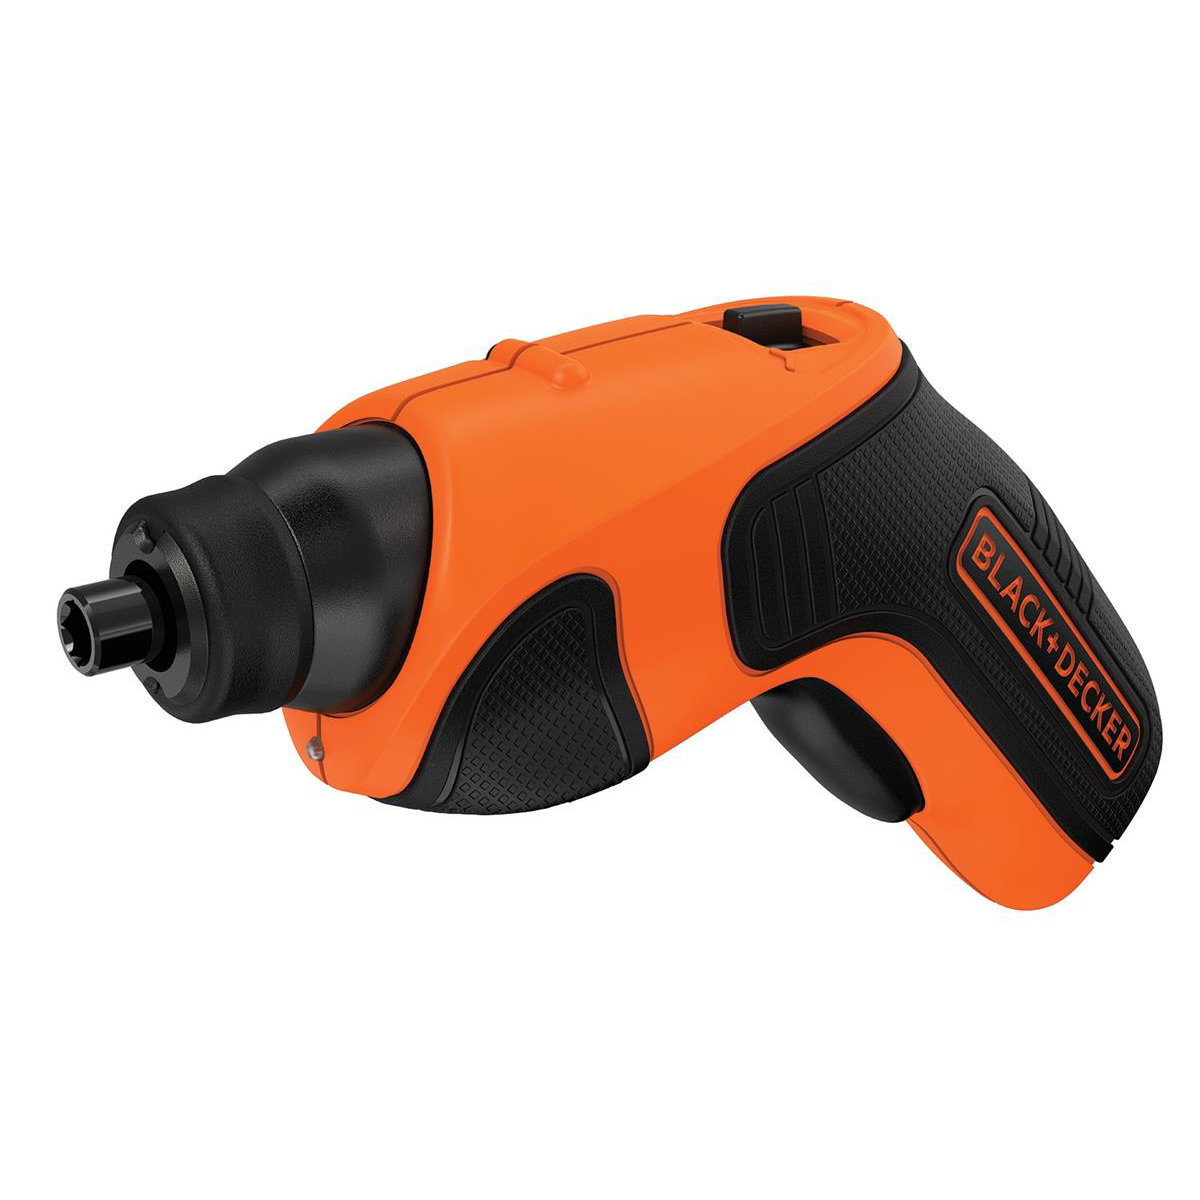 Black & Decker 3.6v Lithium Ion Cordless Screwdriver Ref CS3651LC-GB